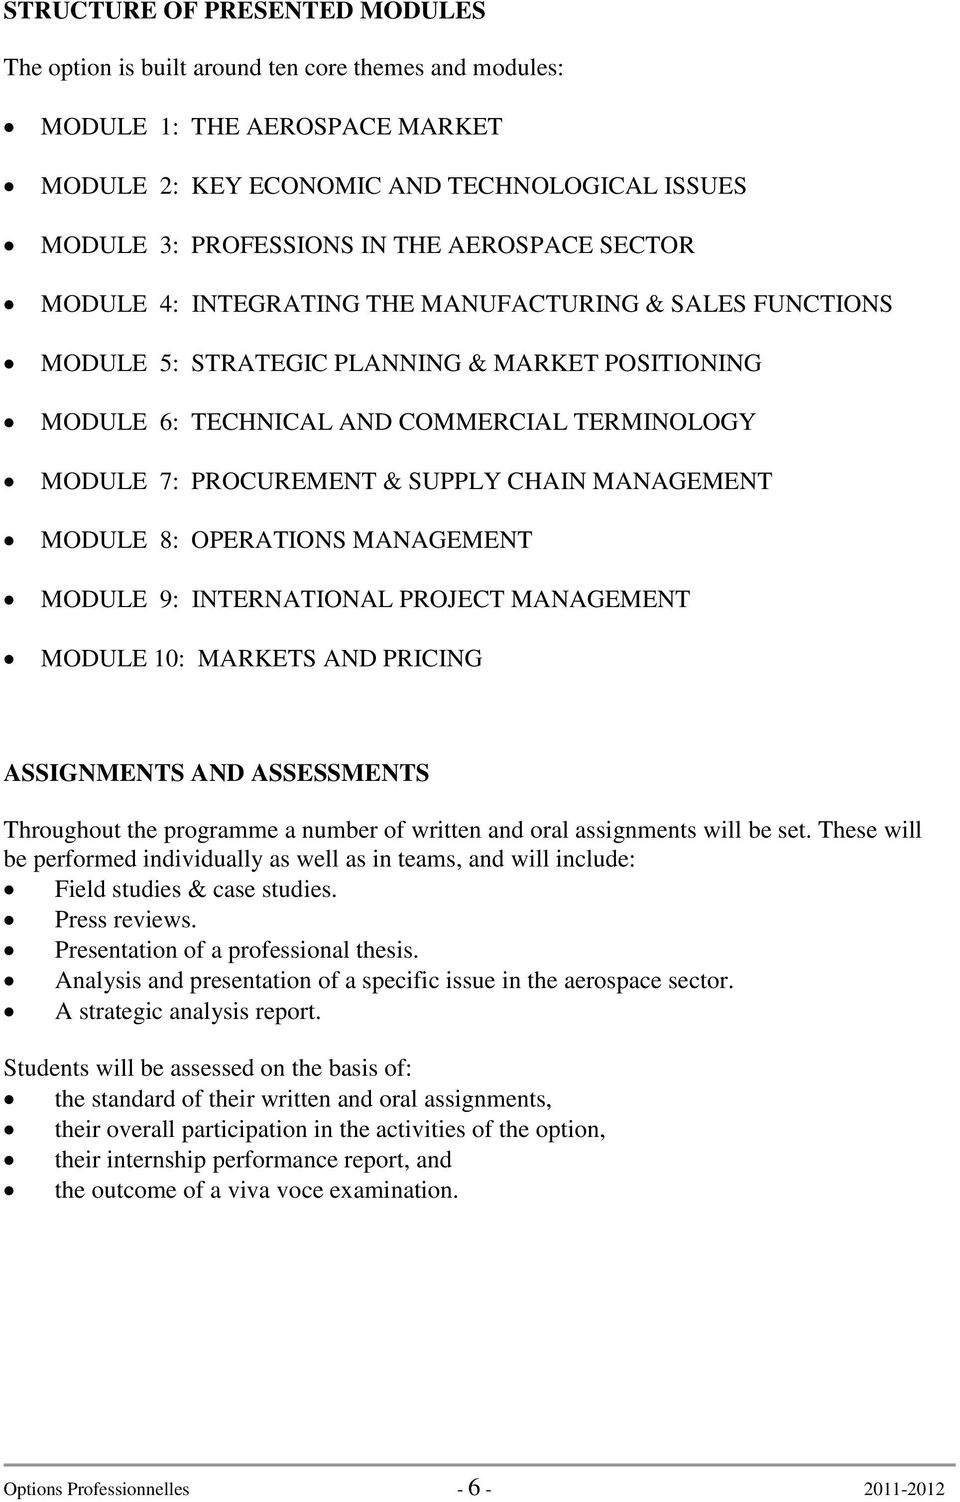 SUPPLY CHAIN MANAGEMENT MODULE 8: OPERATIONS MANAGEMENT MODULE 9: INTERNATIONAL PROJECT MANAGEMENT MODULE 10: MARKETS AND PRICING ASSIGNMENTS AND ASSESSMENTS Throughout the programme a number of